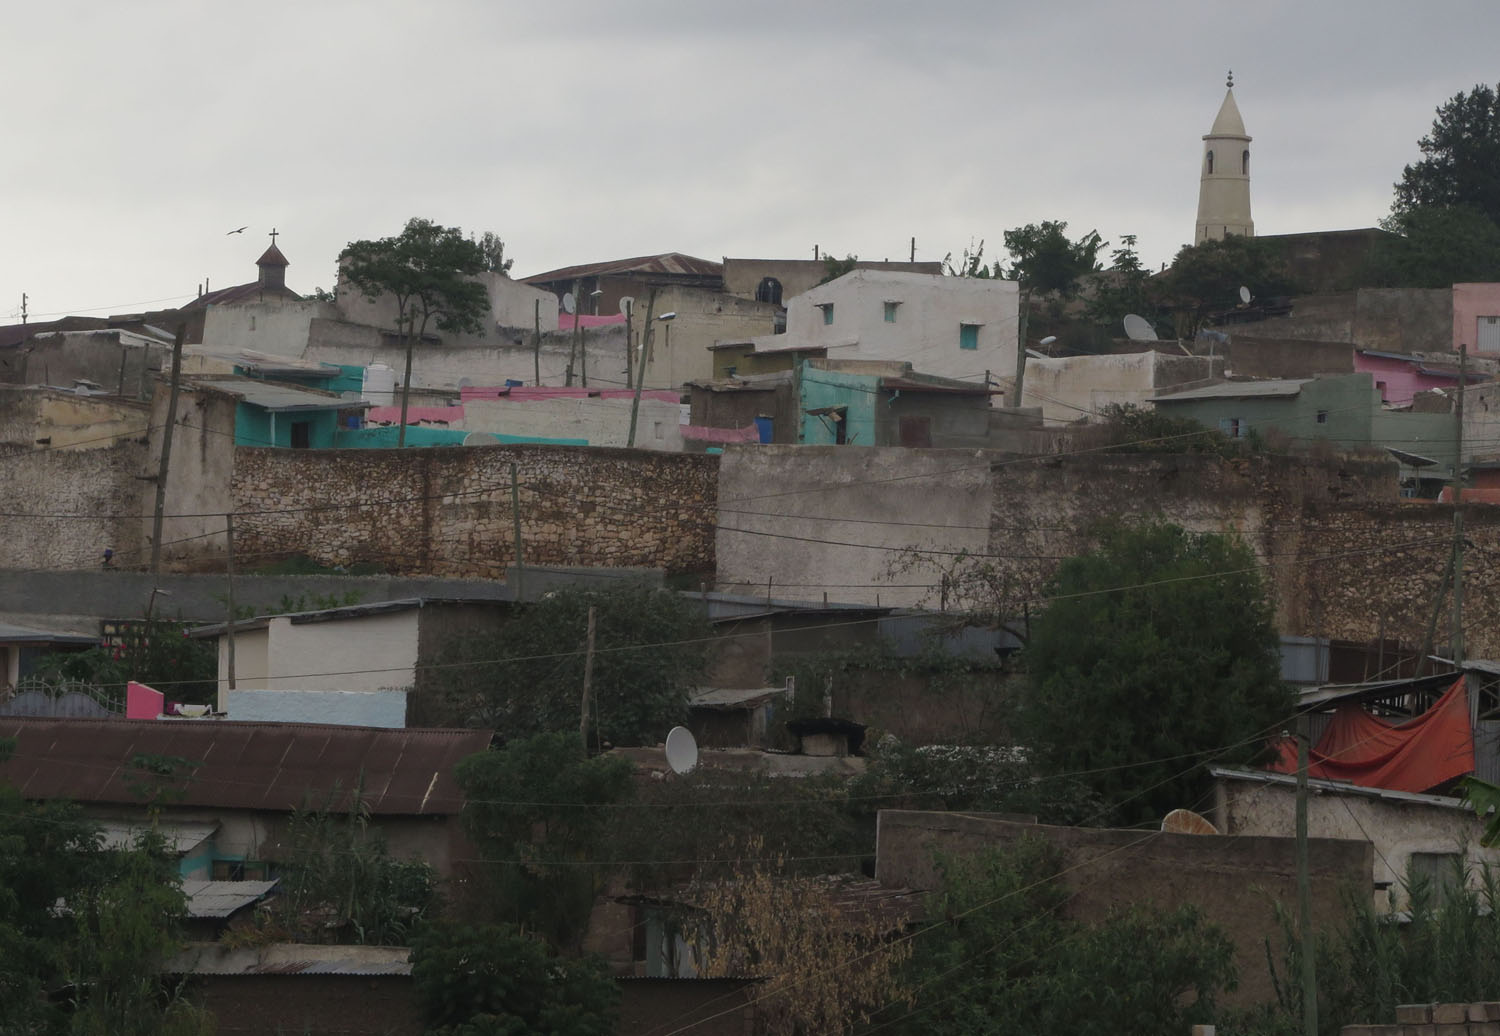 Ethiopia-Harar-Street-Scenes-Church-Mosque